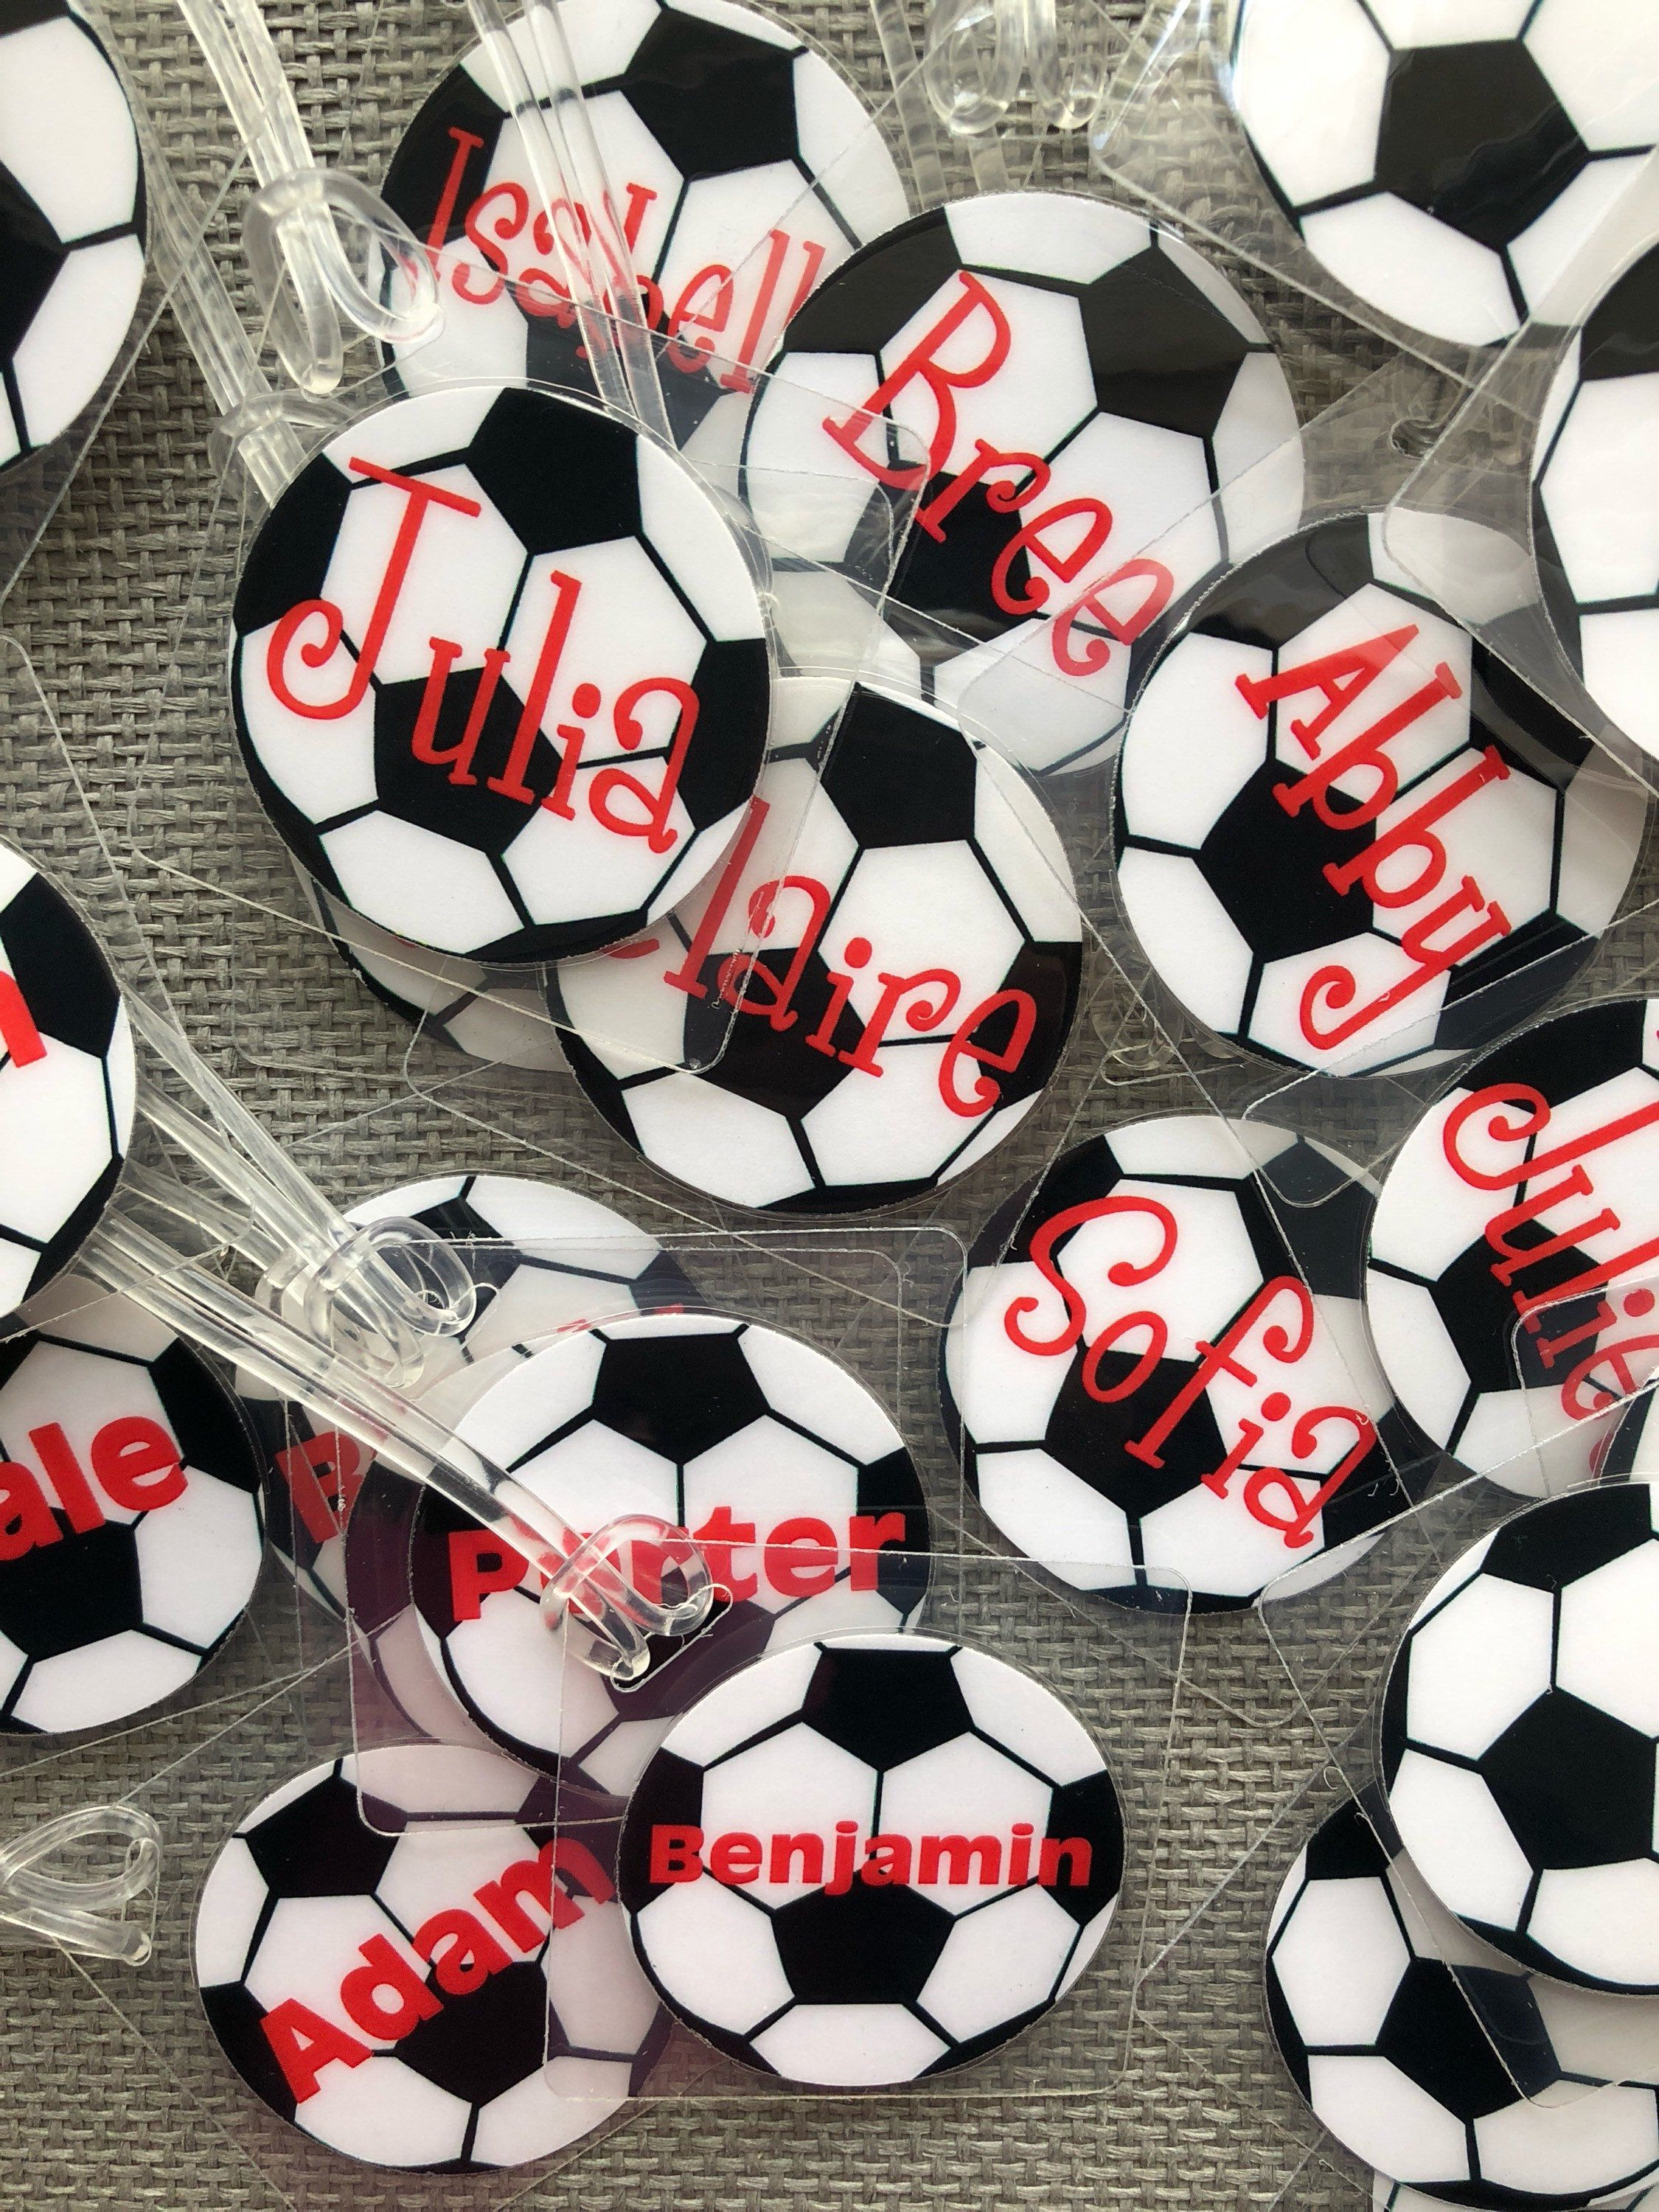 Soccer Bag Tags Great End Of The Season Gifts Or Party Favors By Toddletags On Etsy